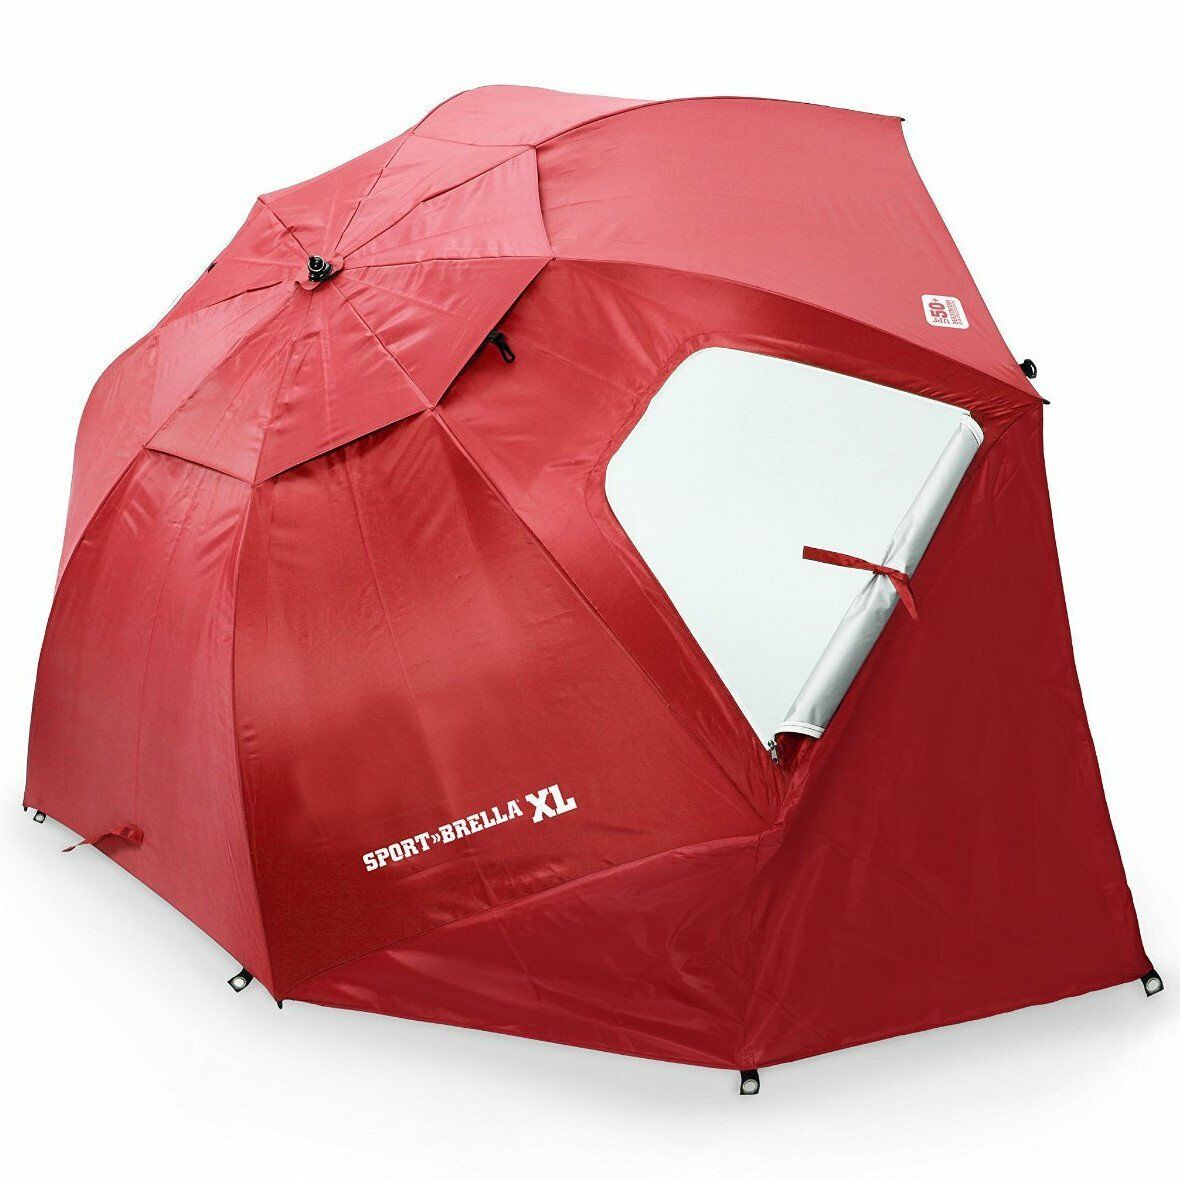 Sport Brella Umbrella Superbrella Beach rosso Wide Sun Prossoection XL 9 Feet nuovo